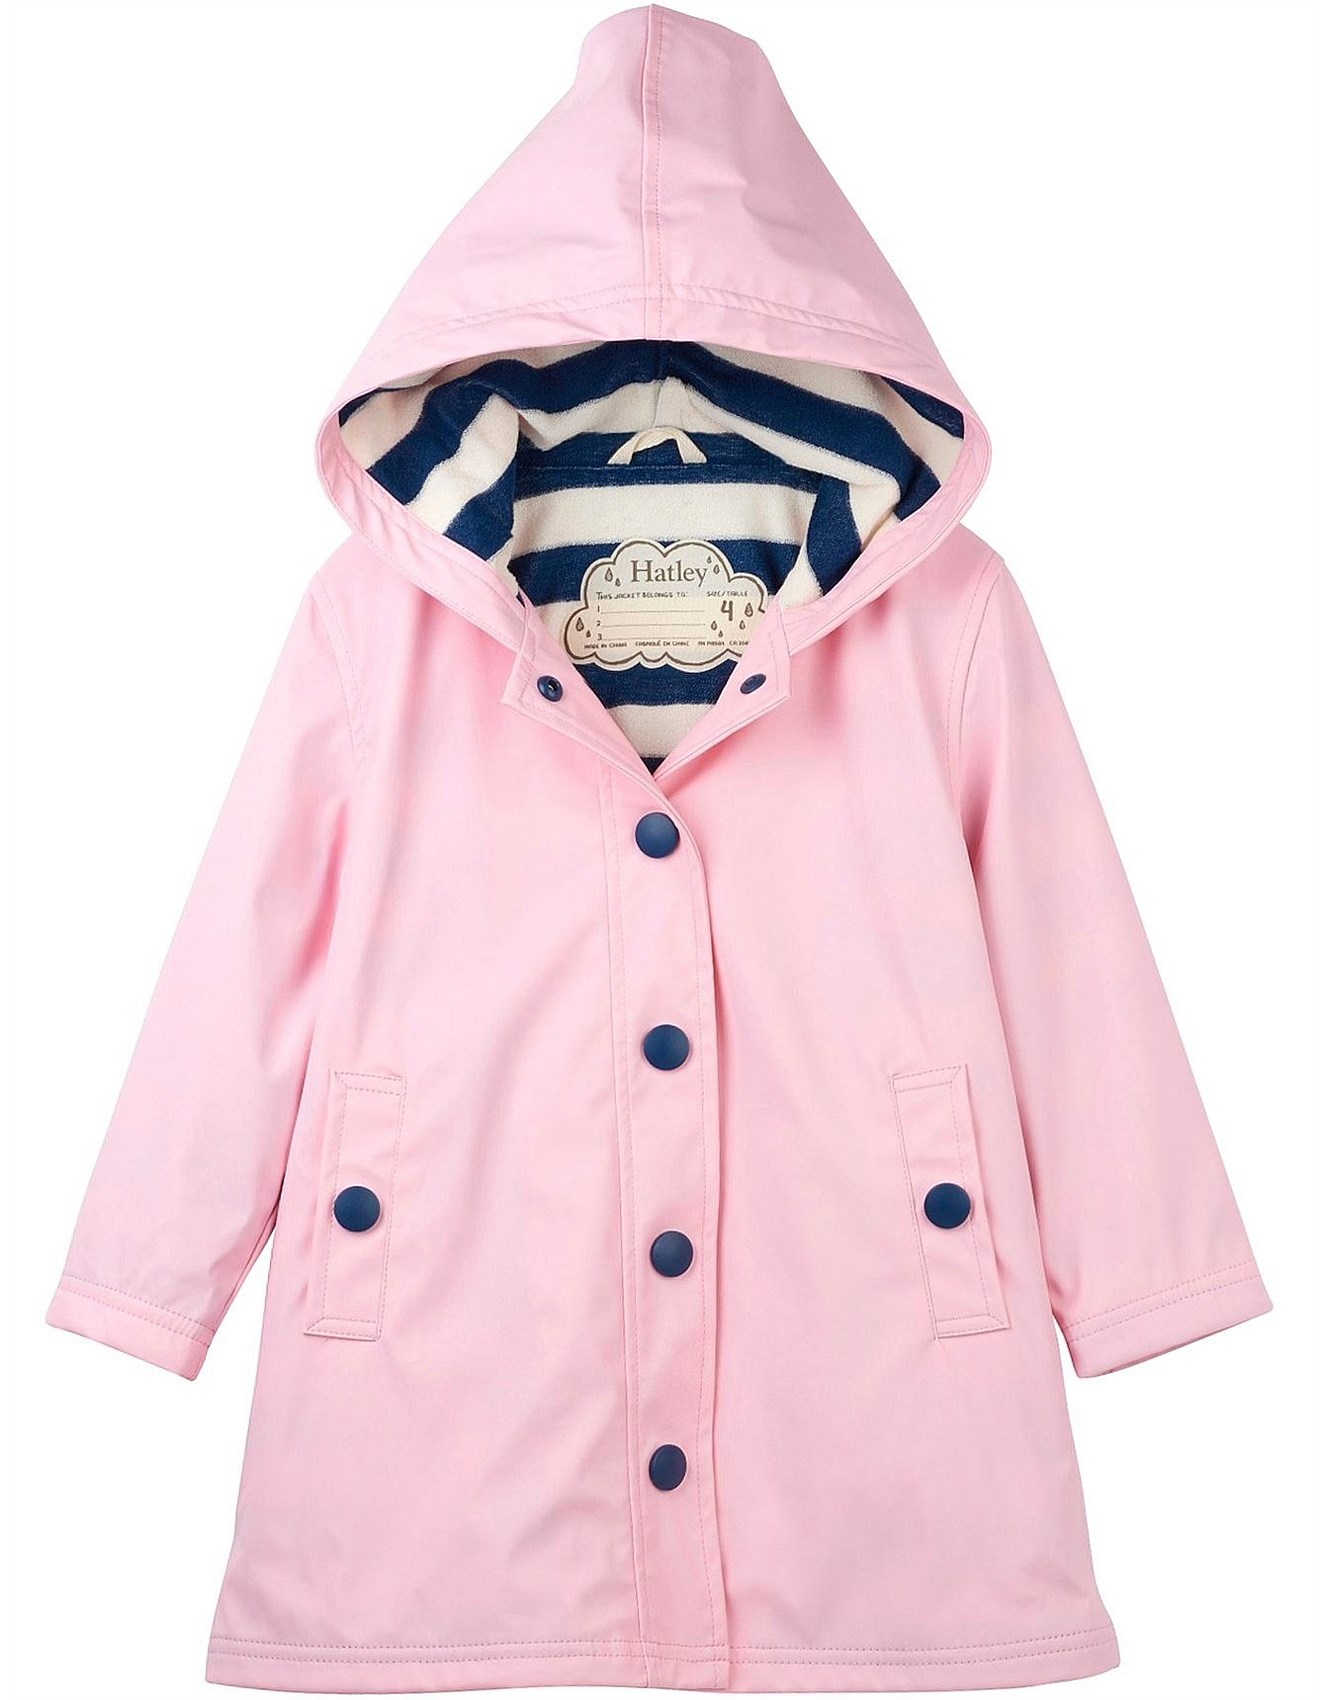 Hatley - Splash Raincoat - Pink & Navy 2019 **